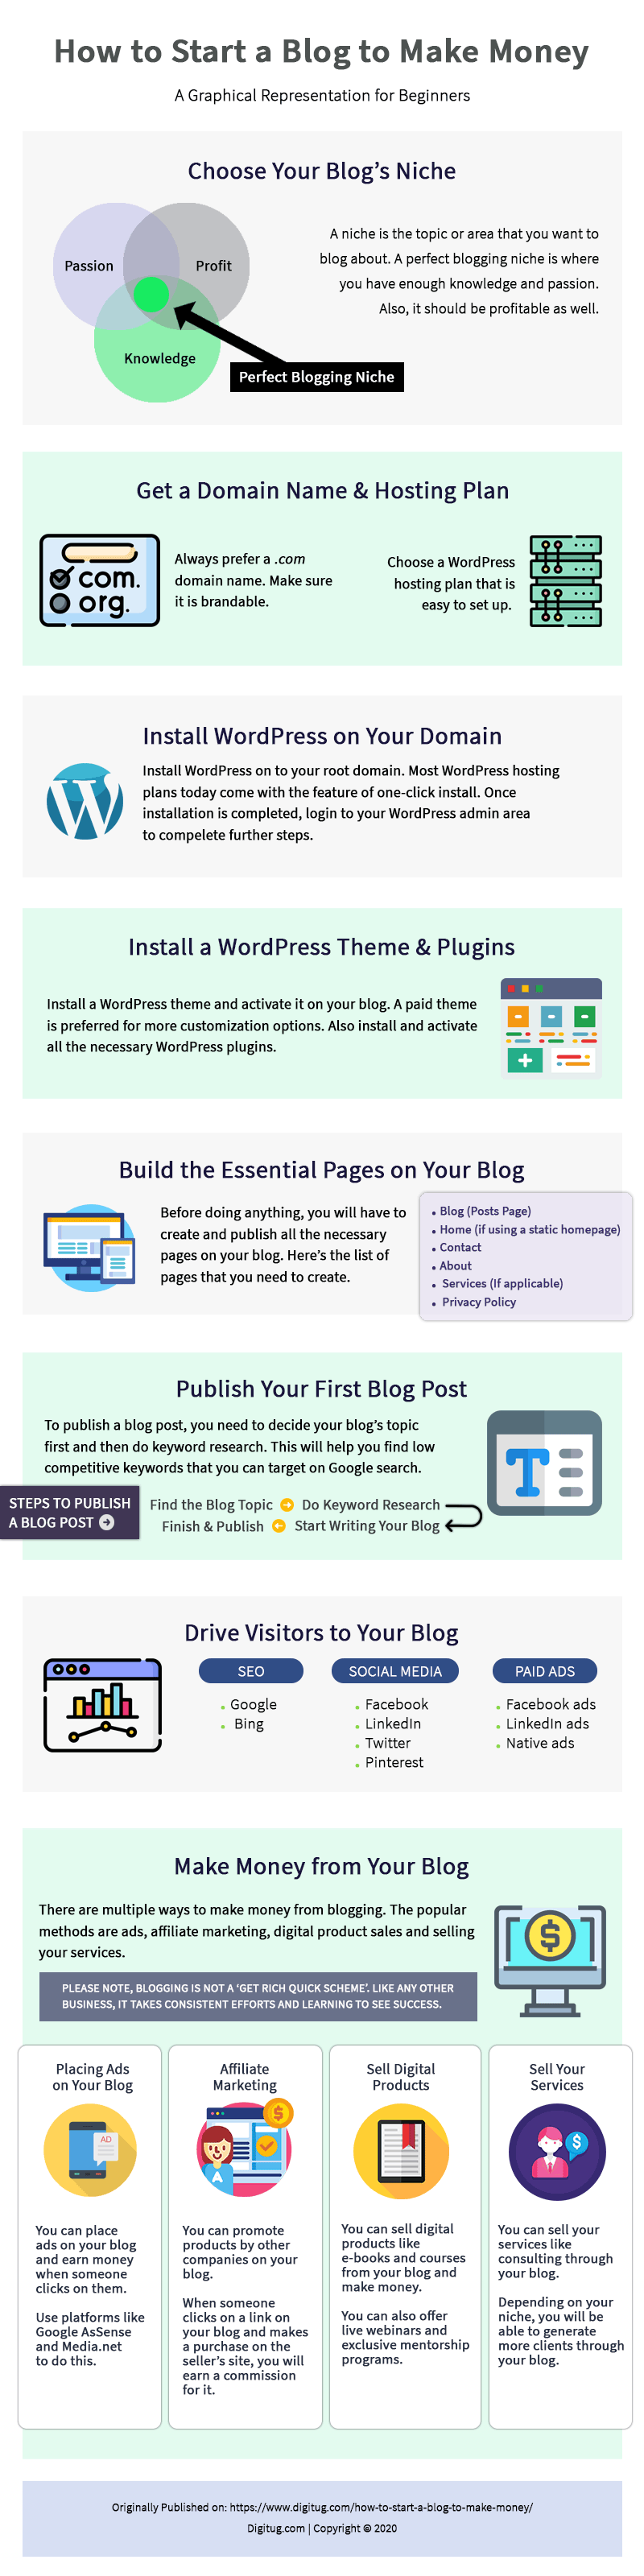 How-to-start-a-blog-to-make-money-infographic